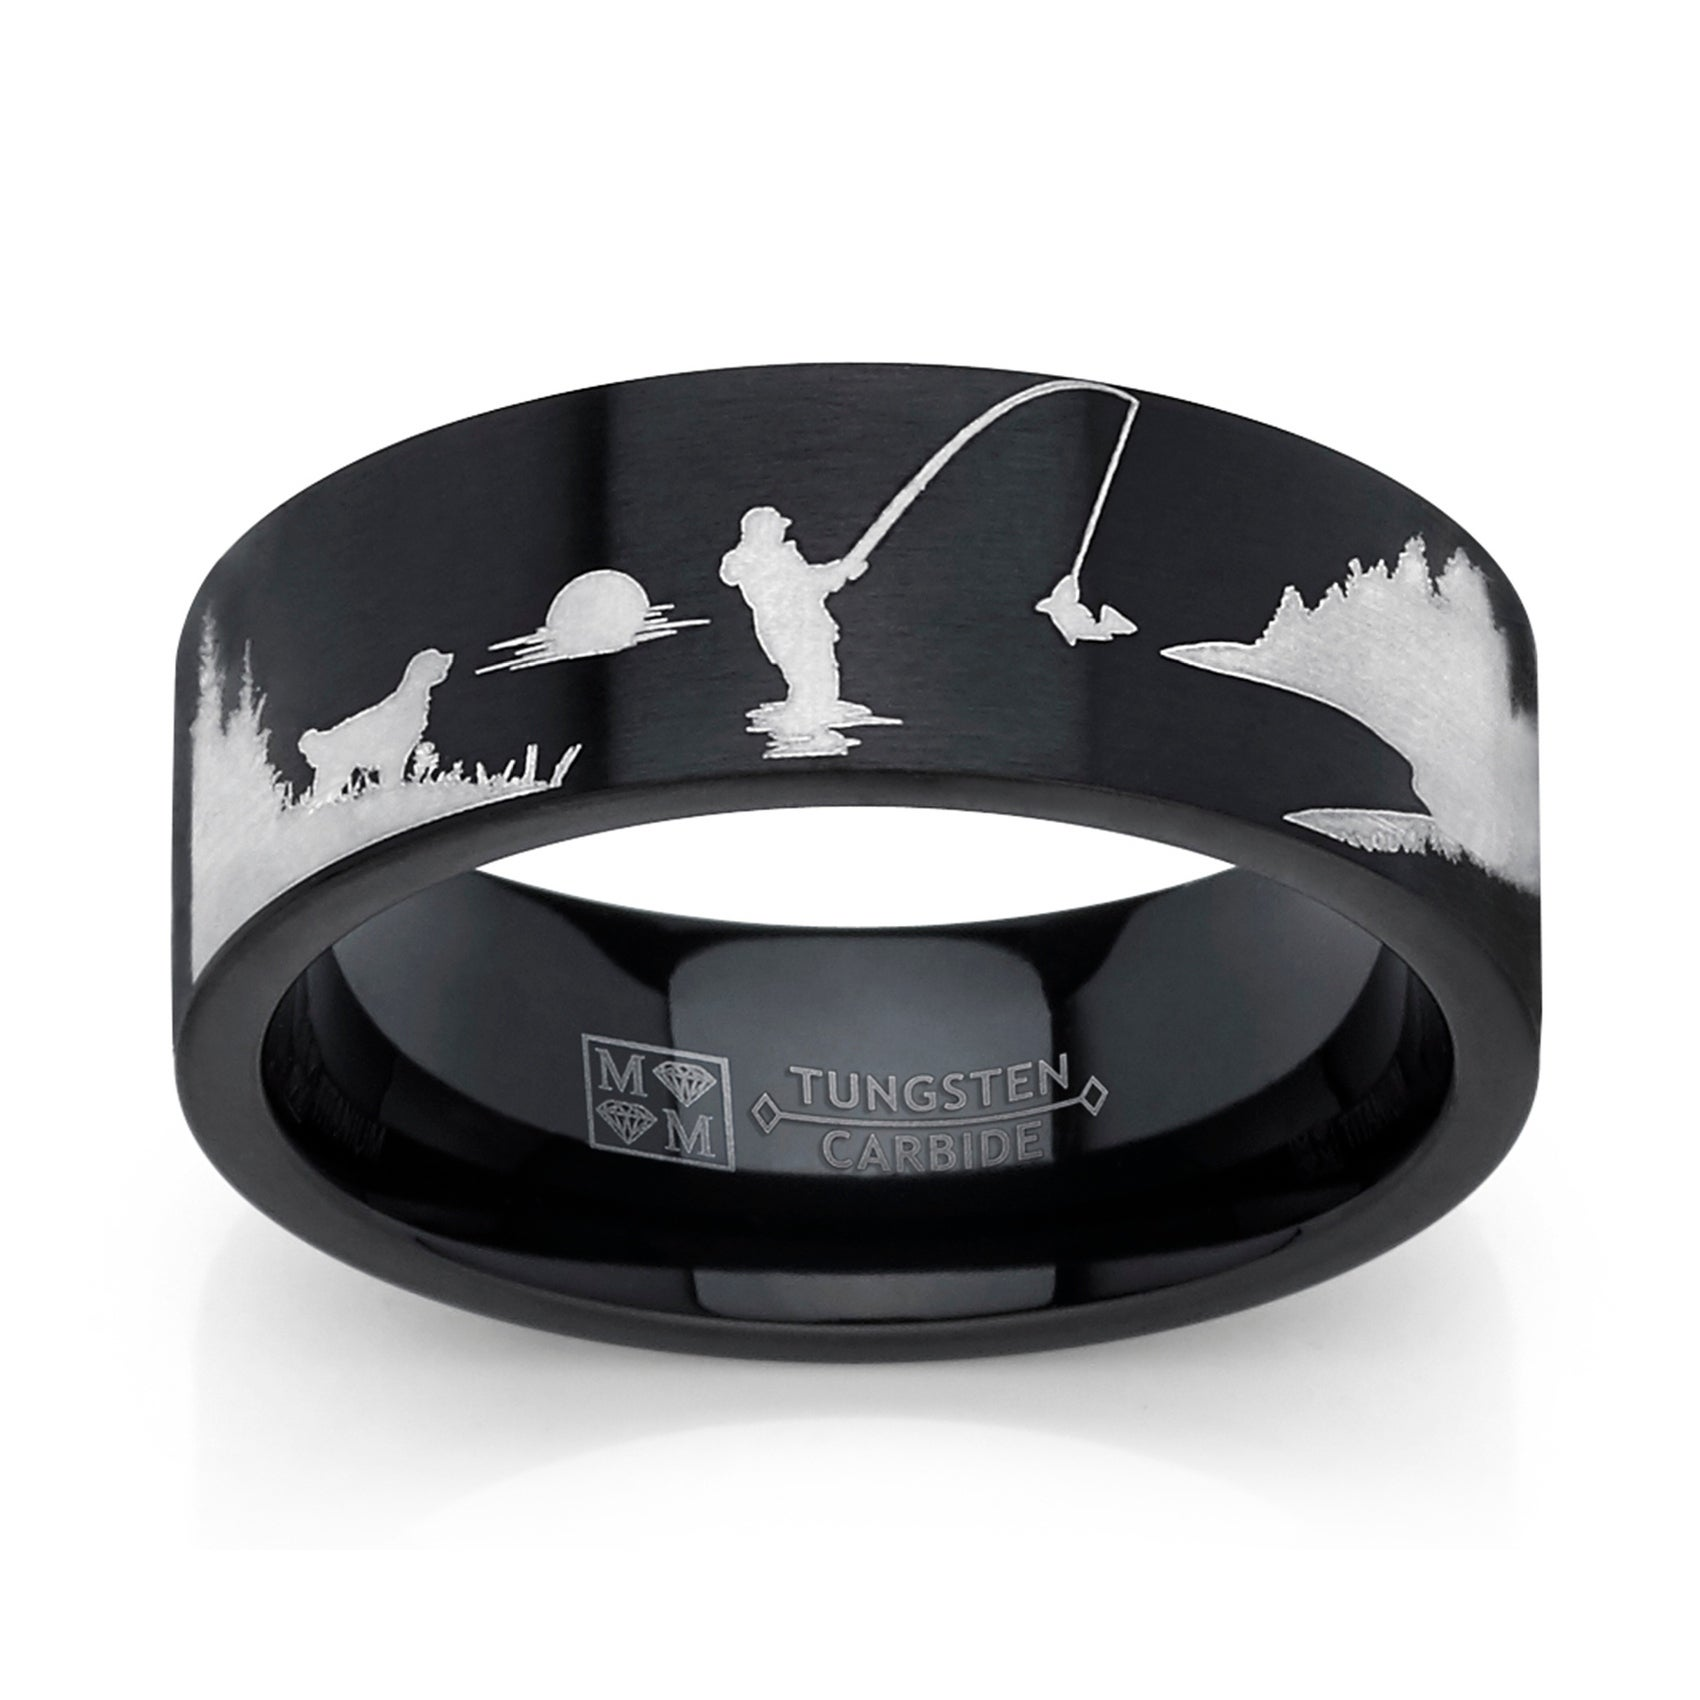 Oliveti Black Tungsten Trout Lake Fly Fishing Enthusiasts Ring, Outdoor Scenery Band 8mm (7.5)